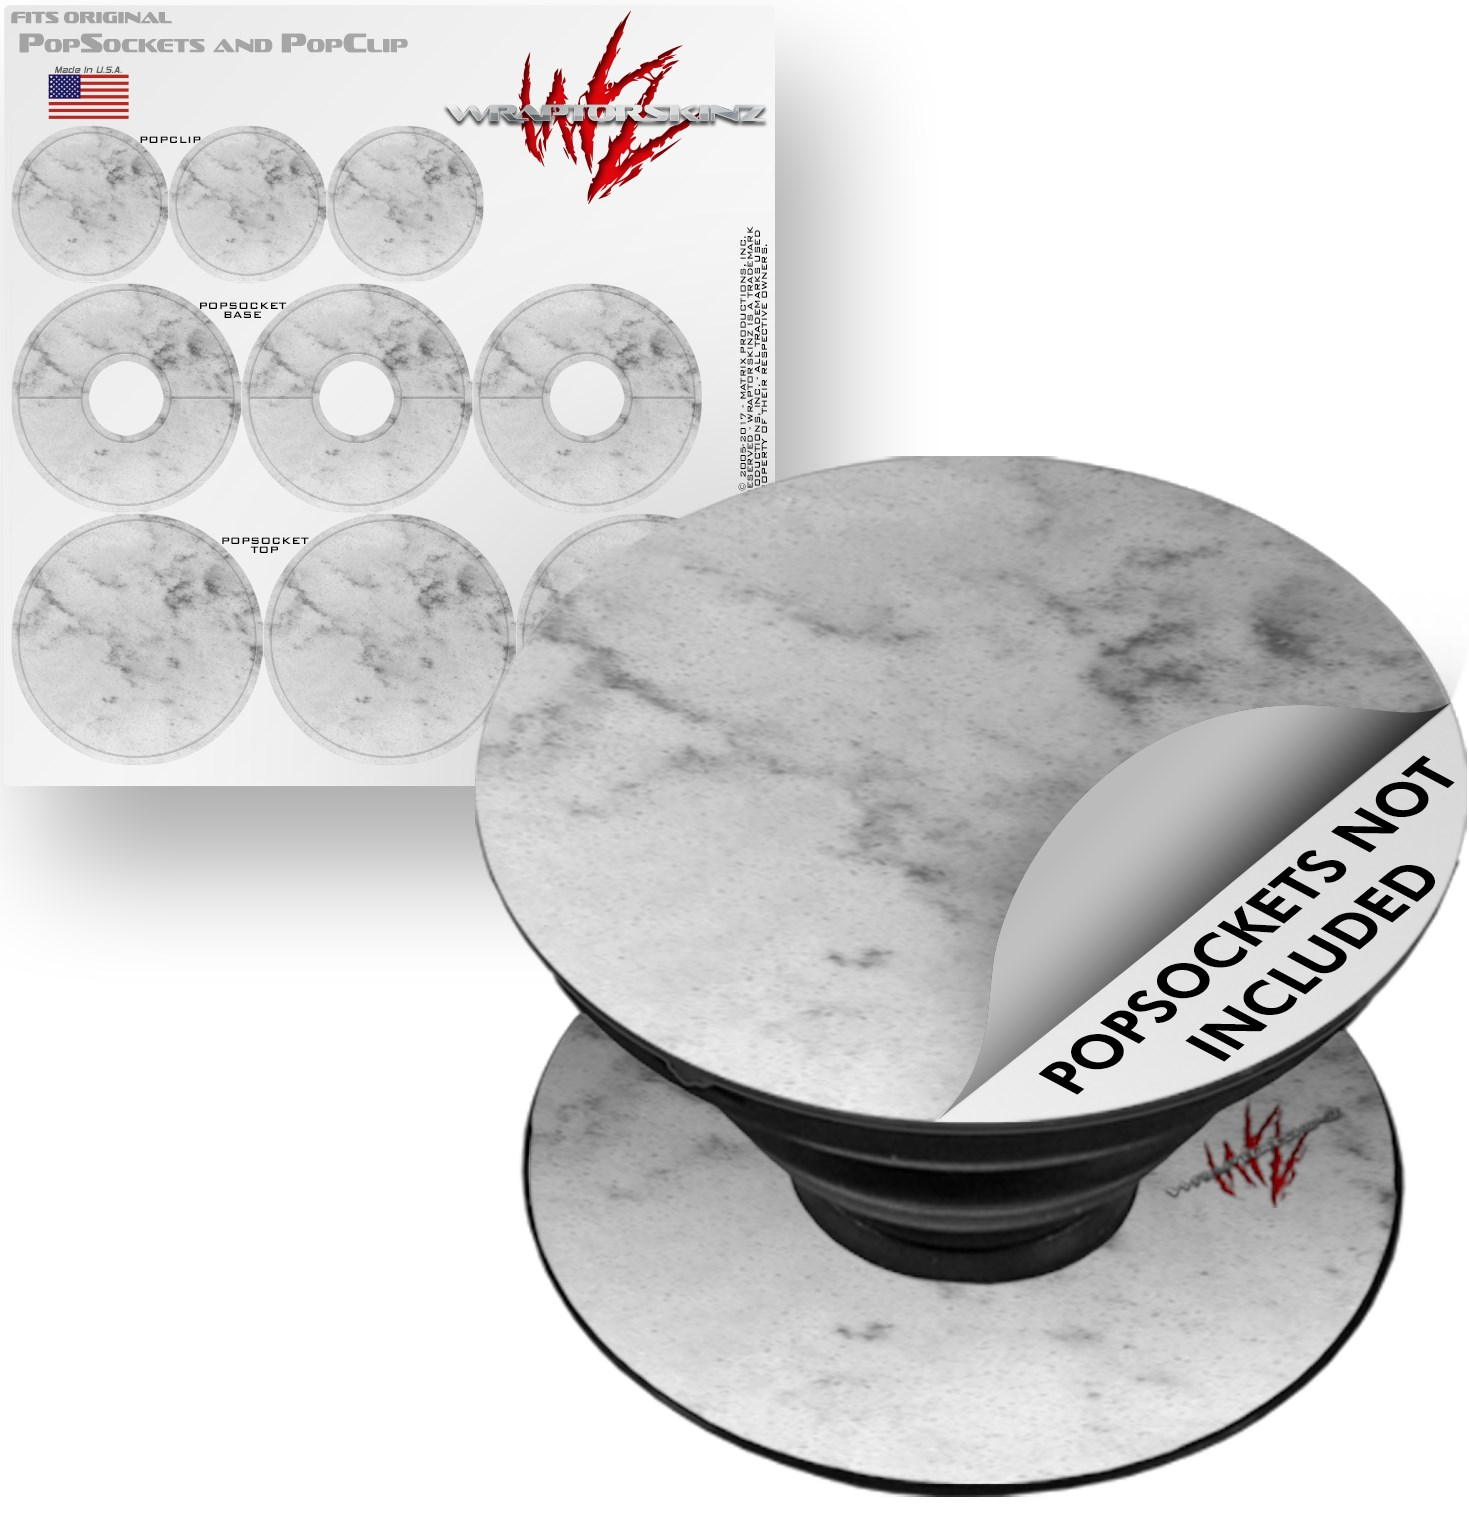 Decal Style Vinyl Skin Wrap 3 Pack for PopSockets Marble Granite 07 White Gray (POPSOCKET NOT INCLUDED) by WraptorSkinz